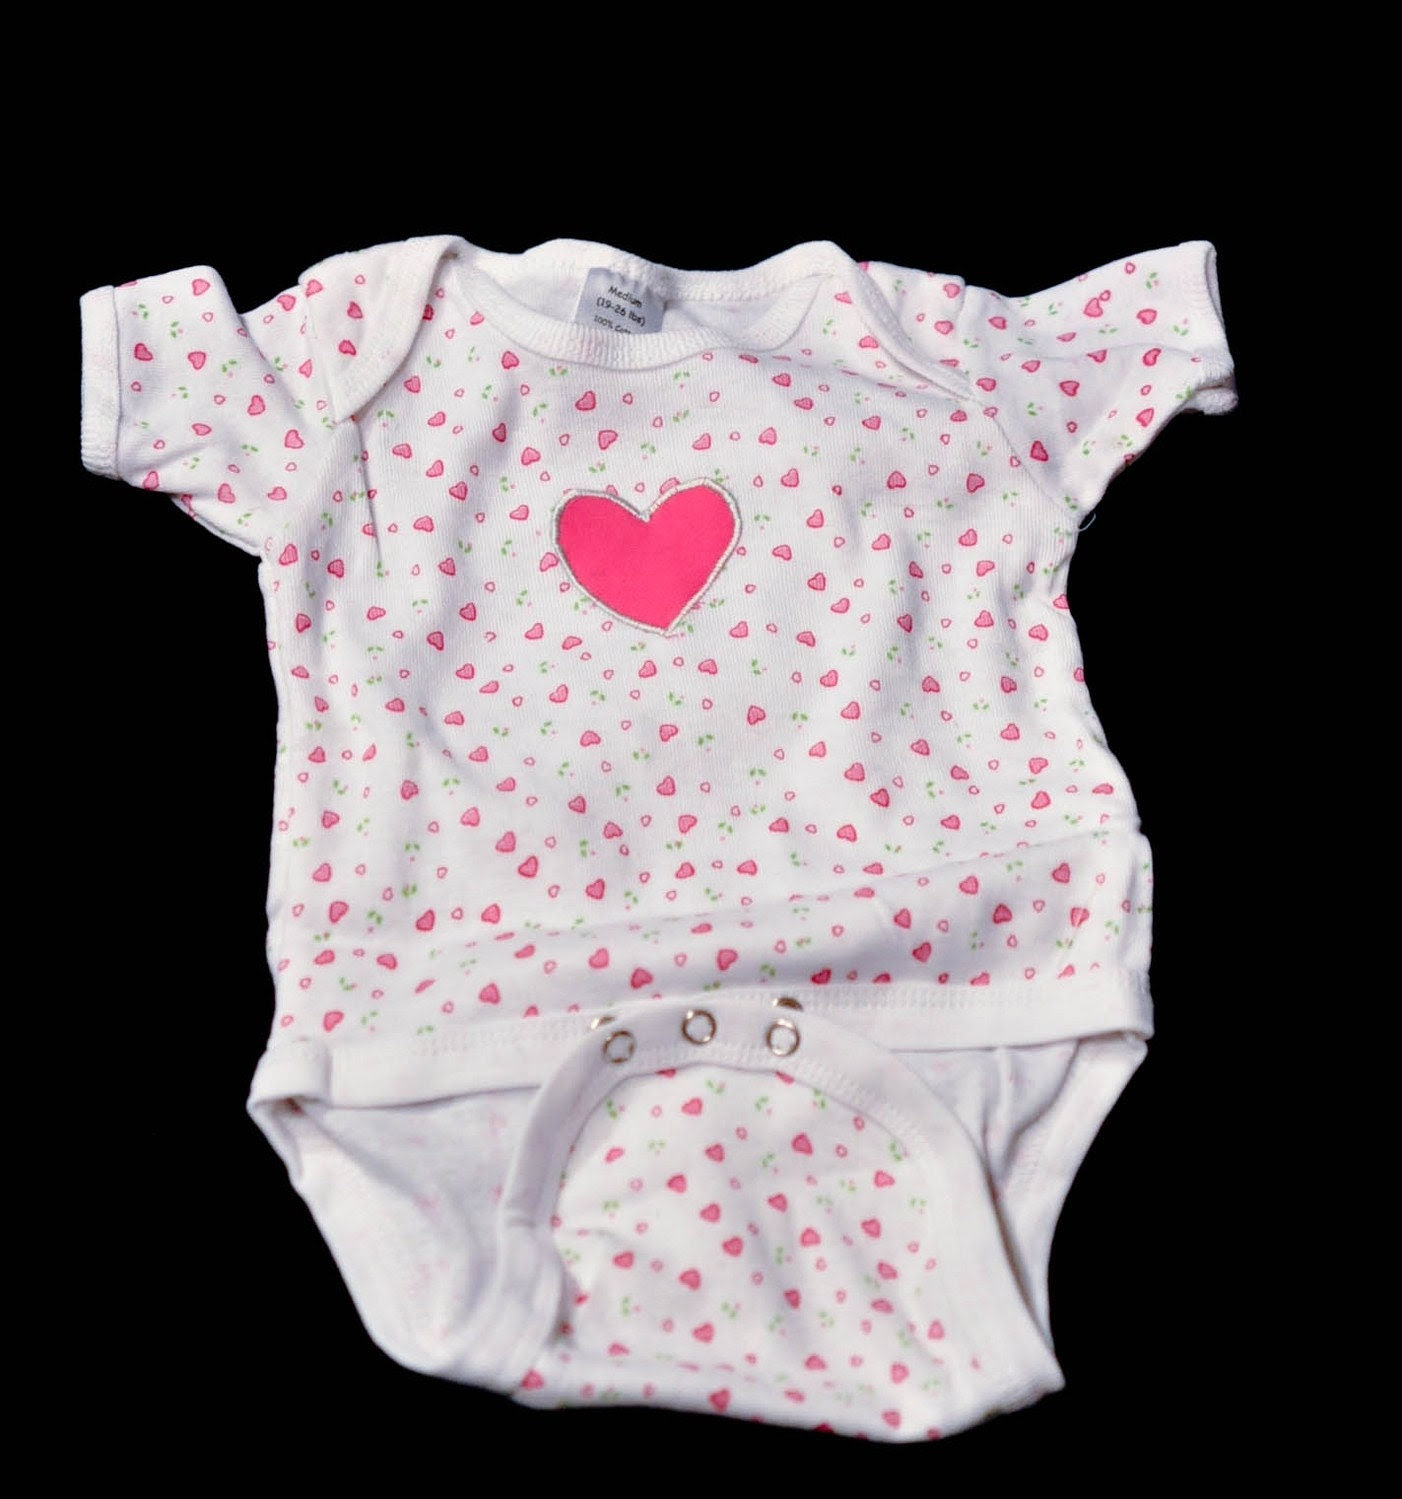 Handmade Heart Applique Onesie